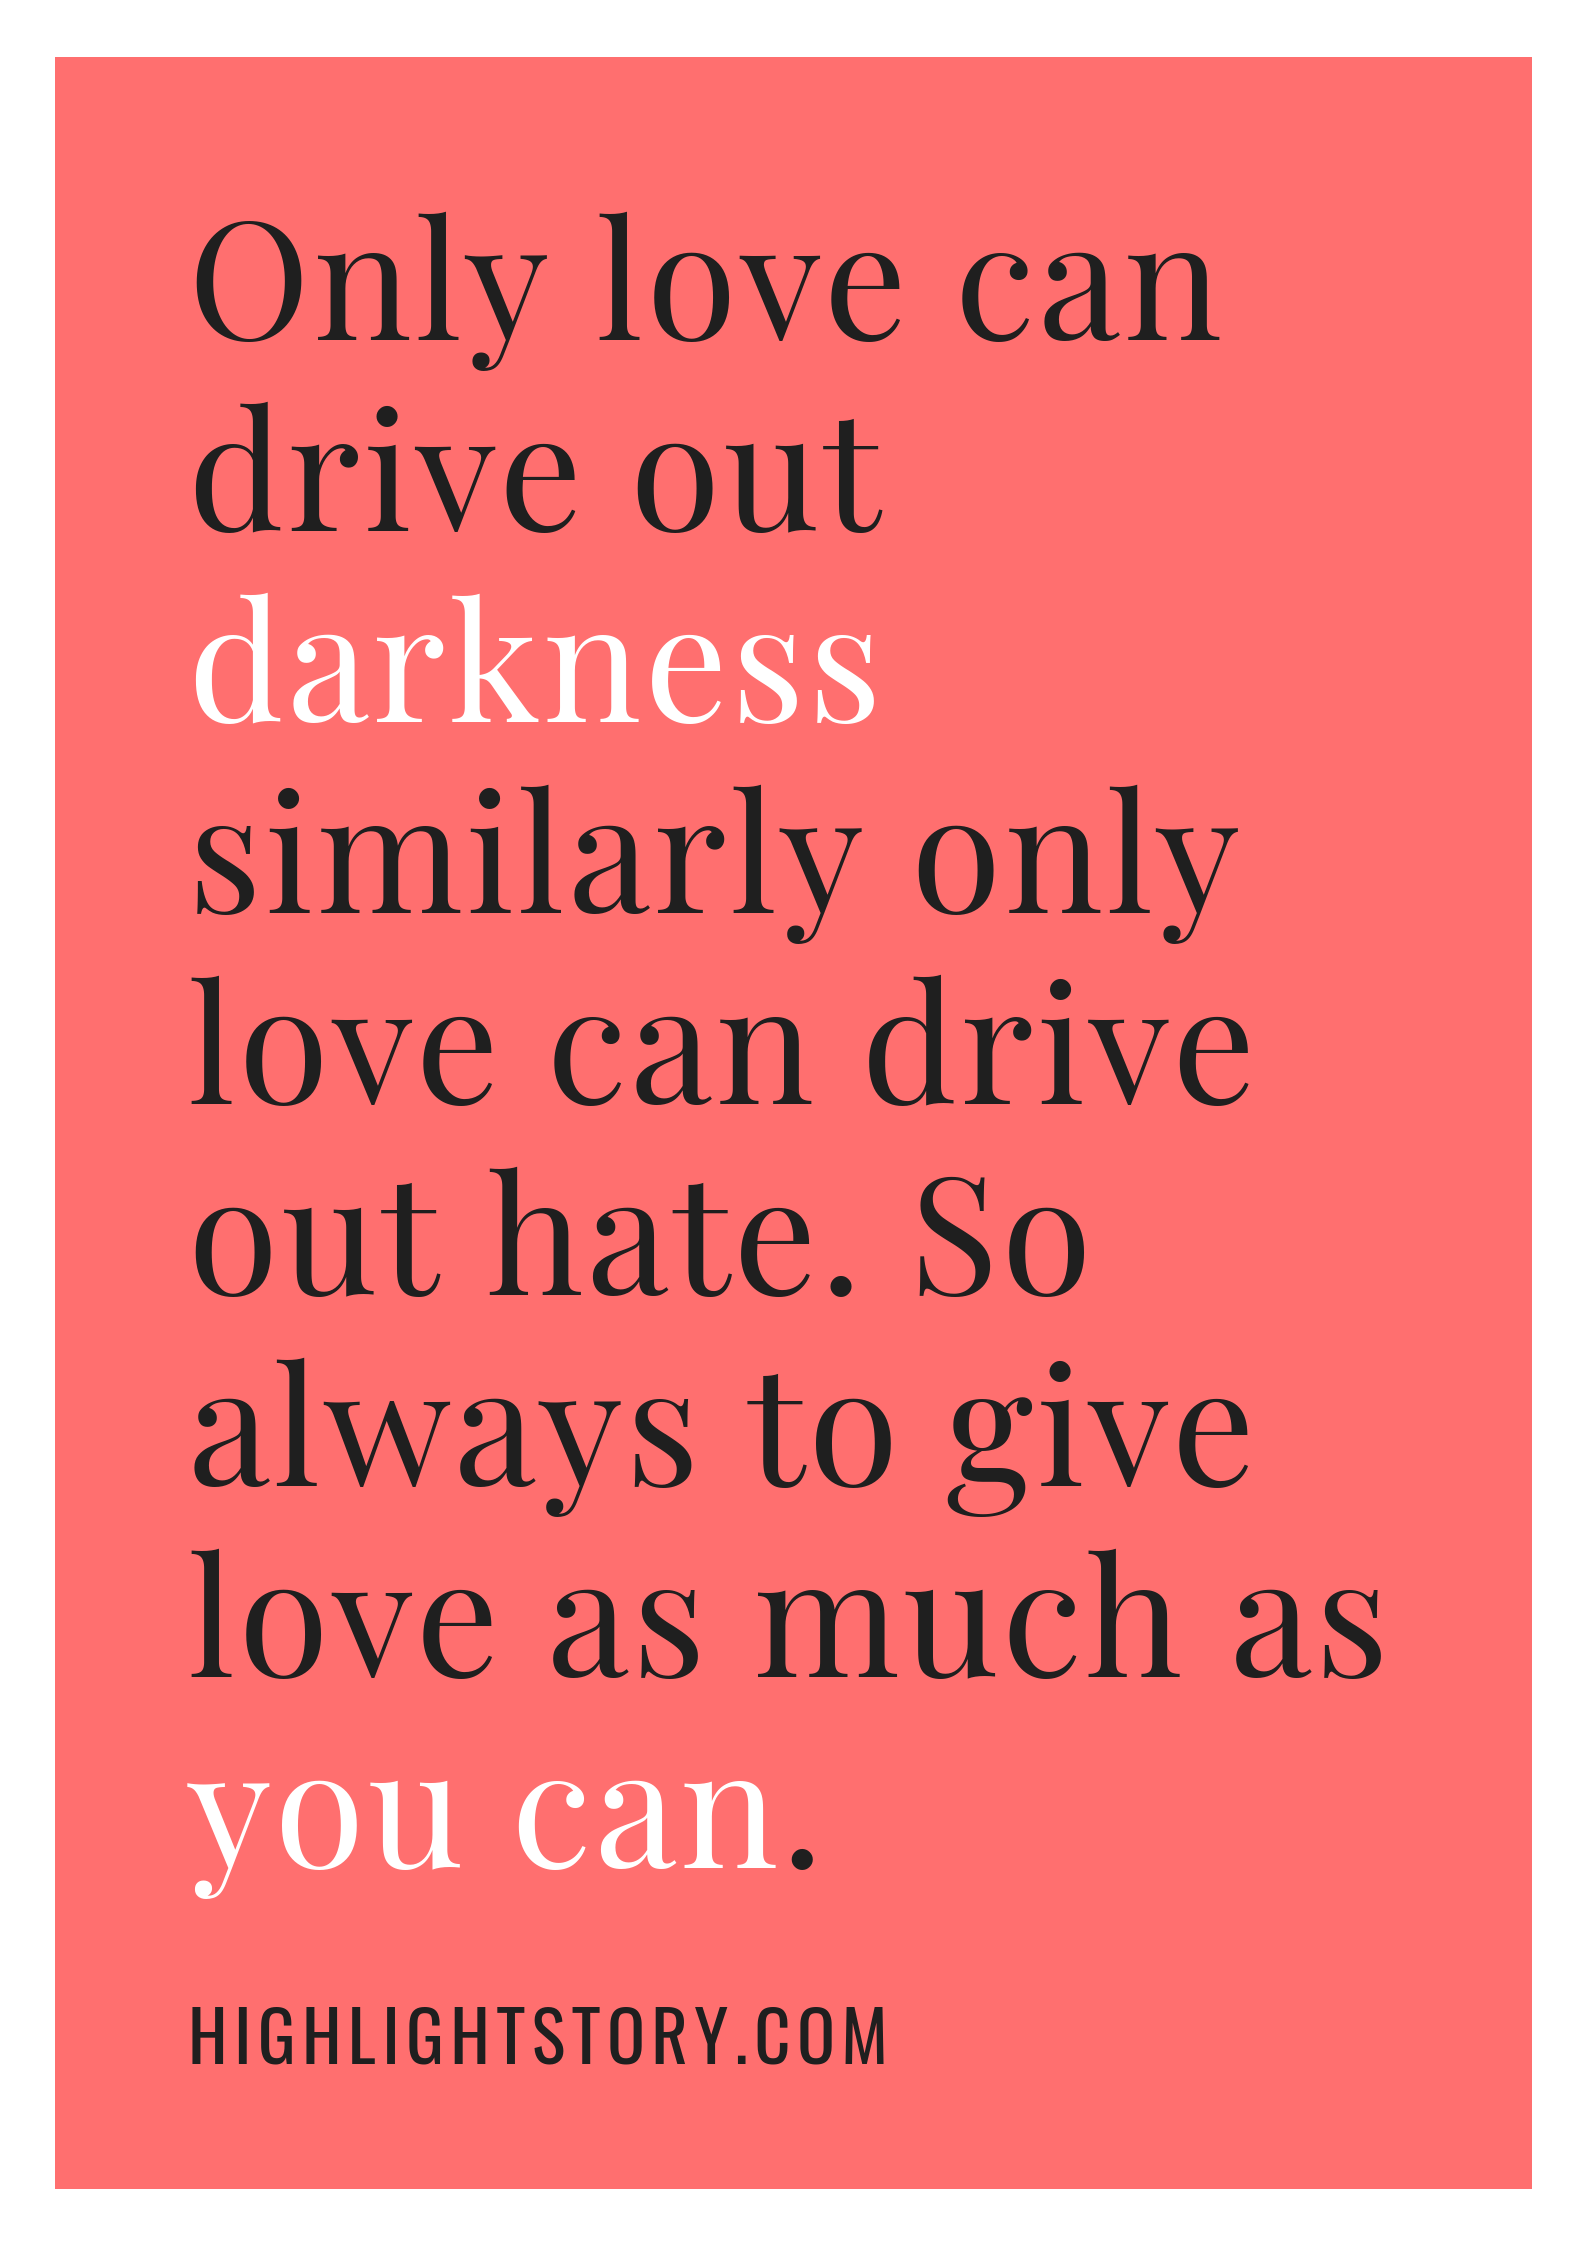 Only love can drive out darkness similarly only love can drive out hate. So always to give love as much as you can